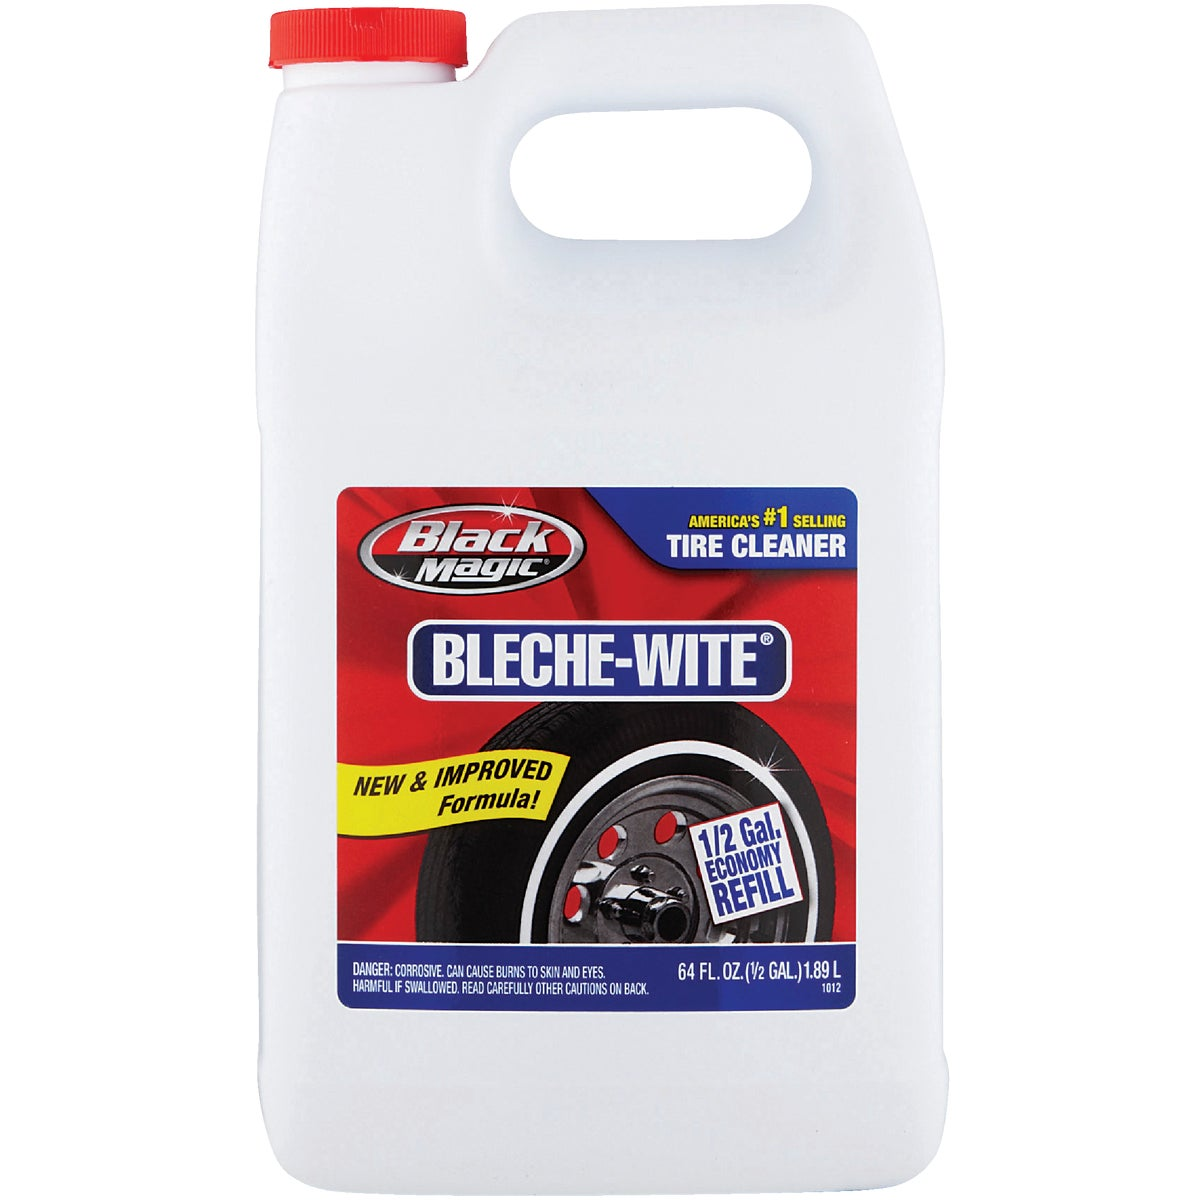 64OZ BLWITE TIRE CLEANER - 800002223 by Itw Global Brands